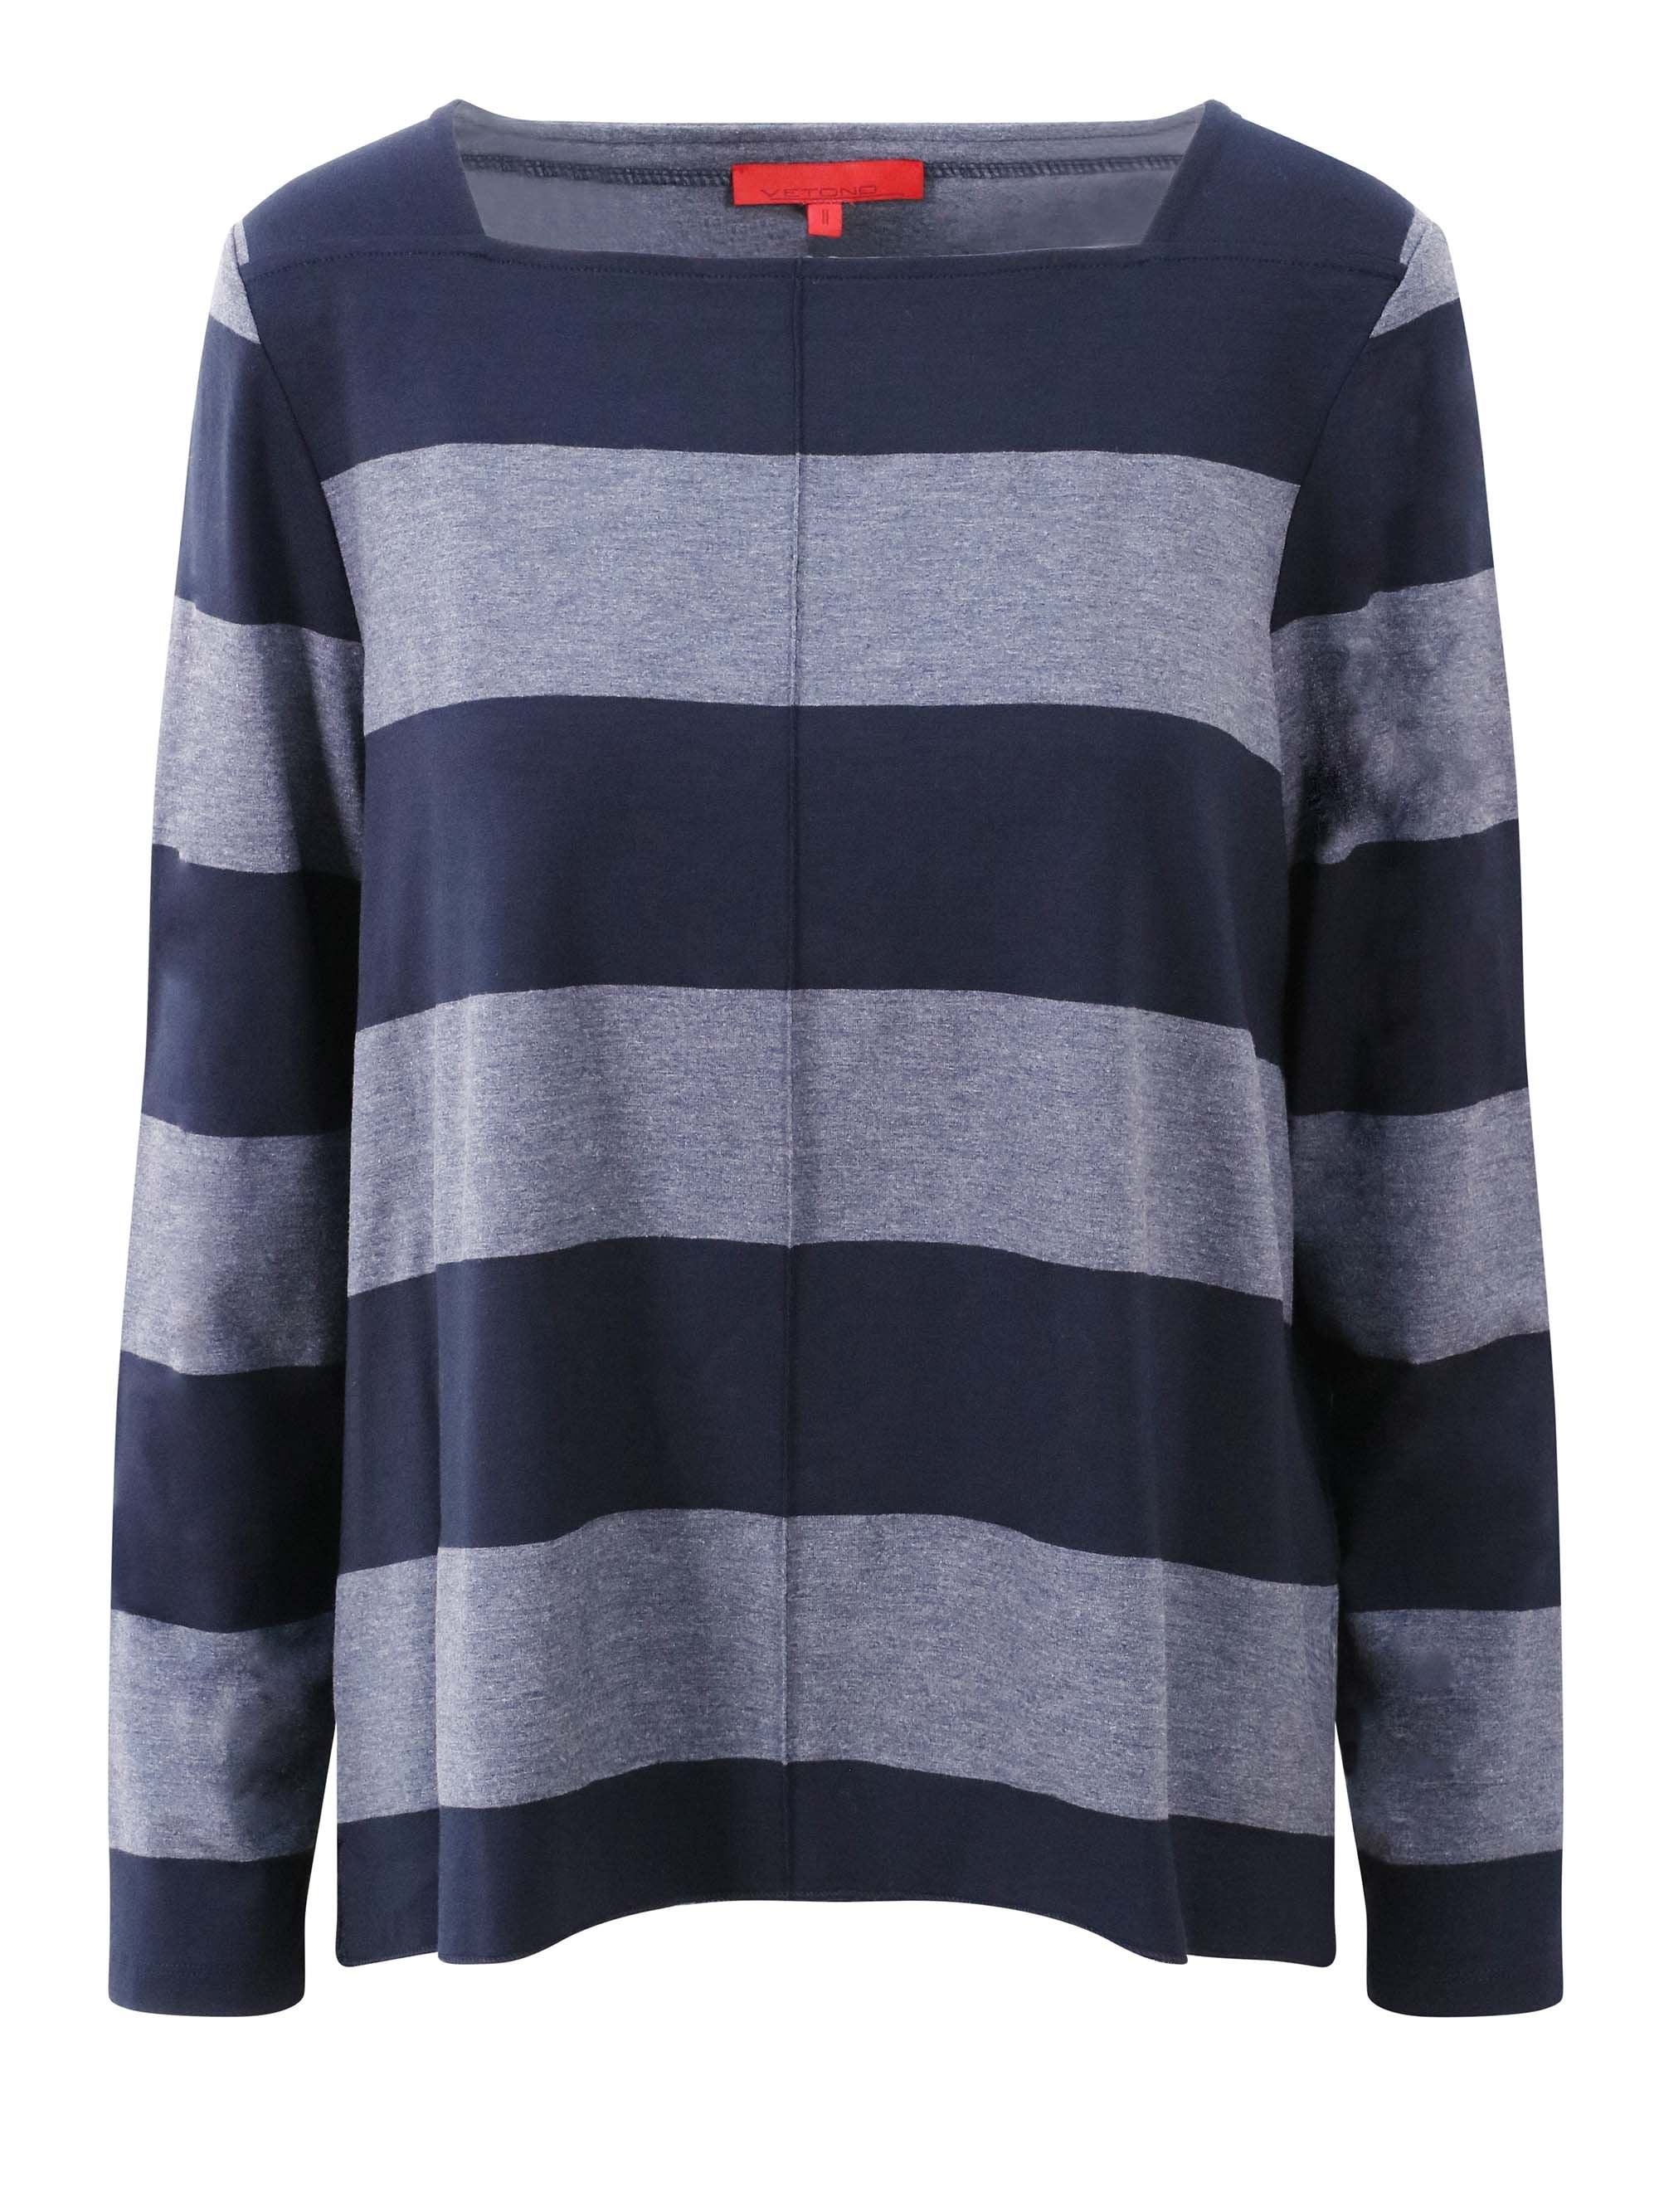 Vetono Blue/Grey Striped Jersey Square Neck Top